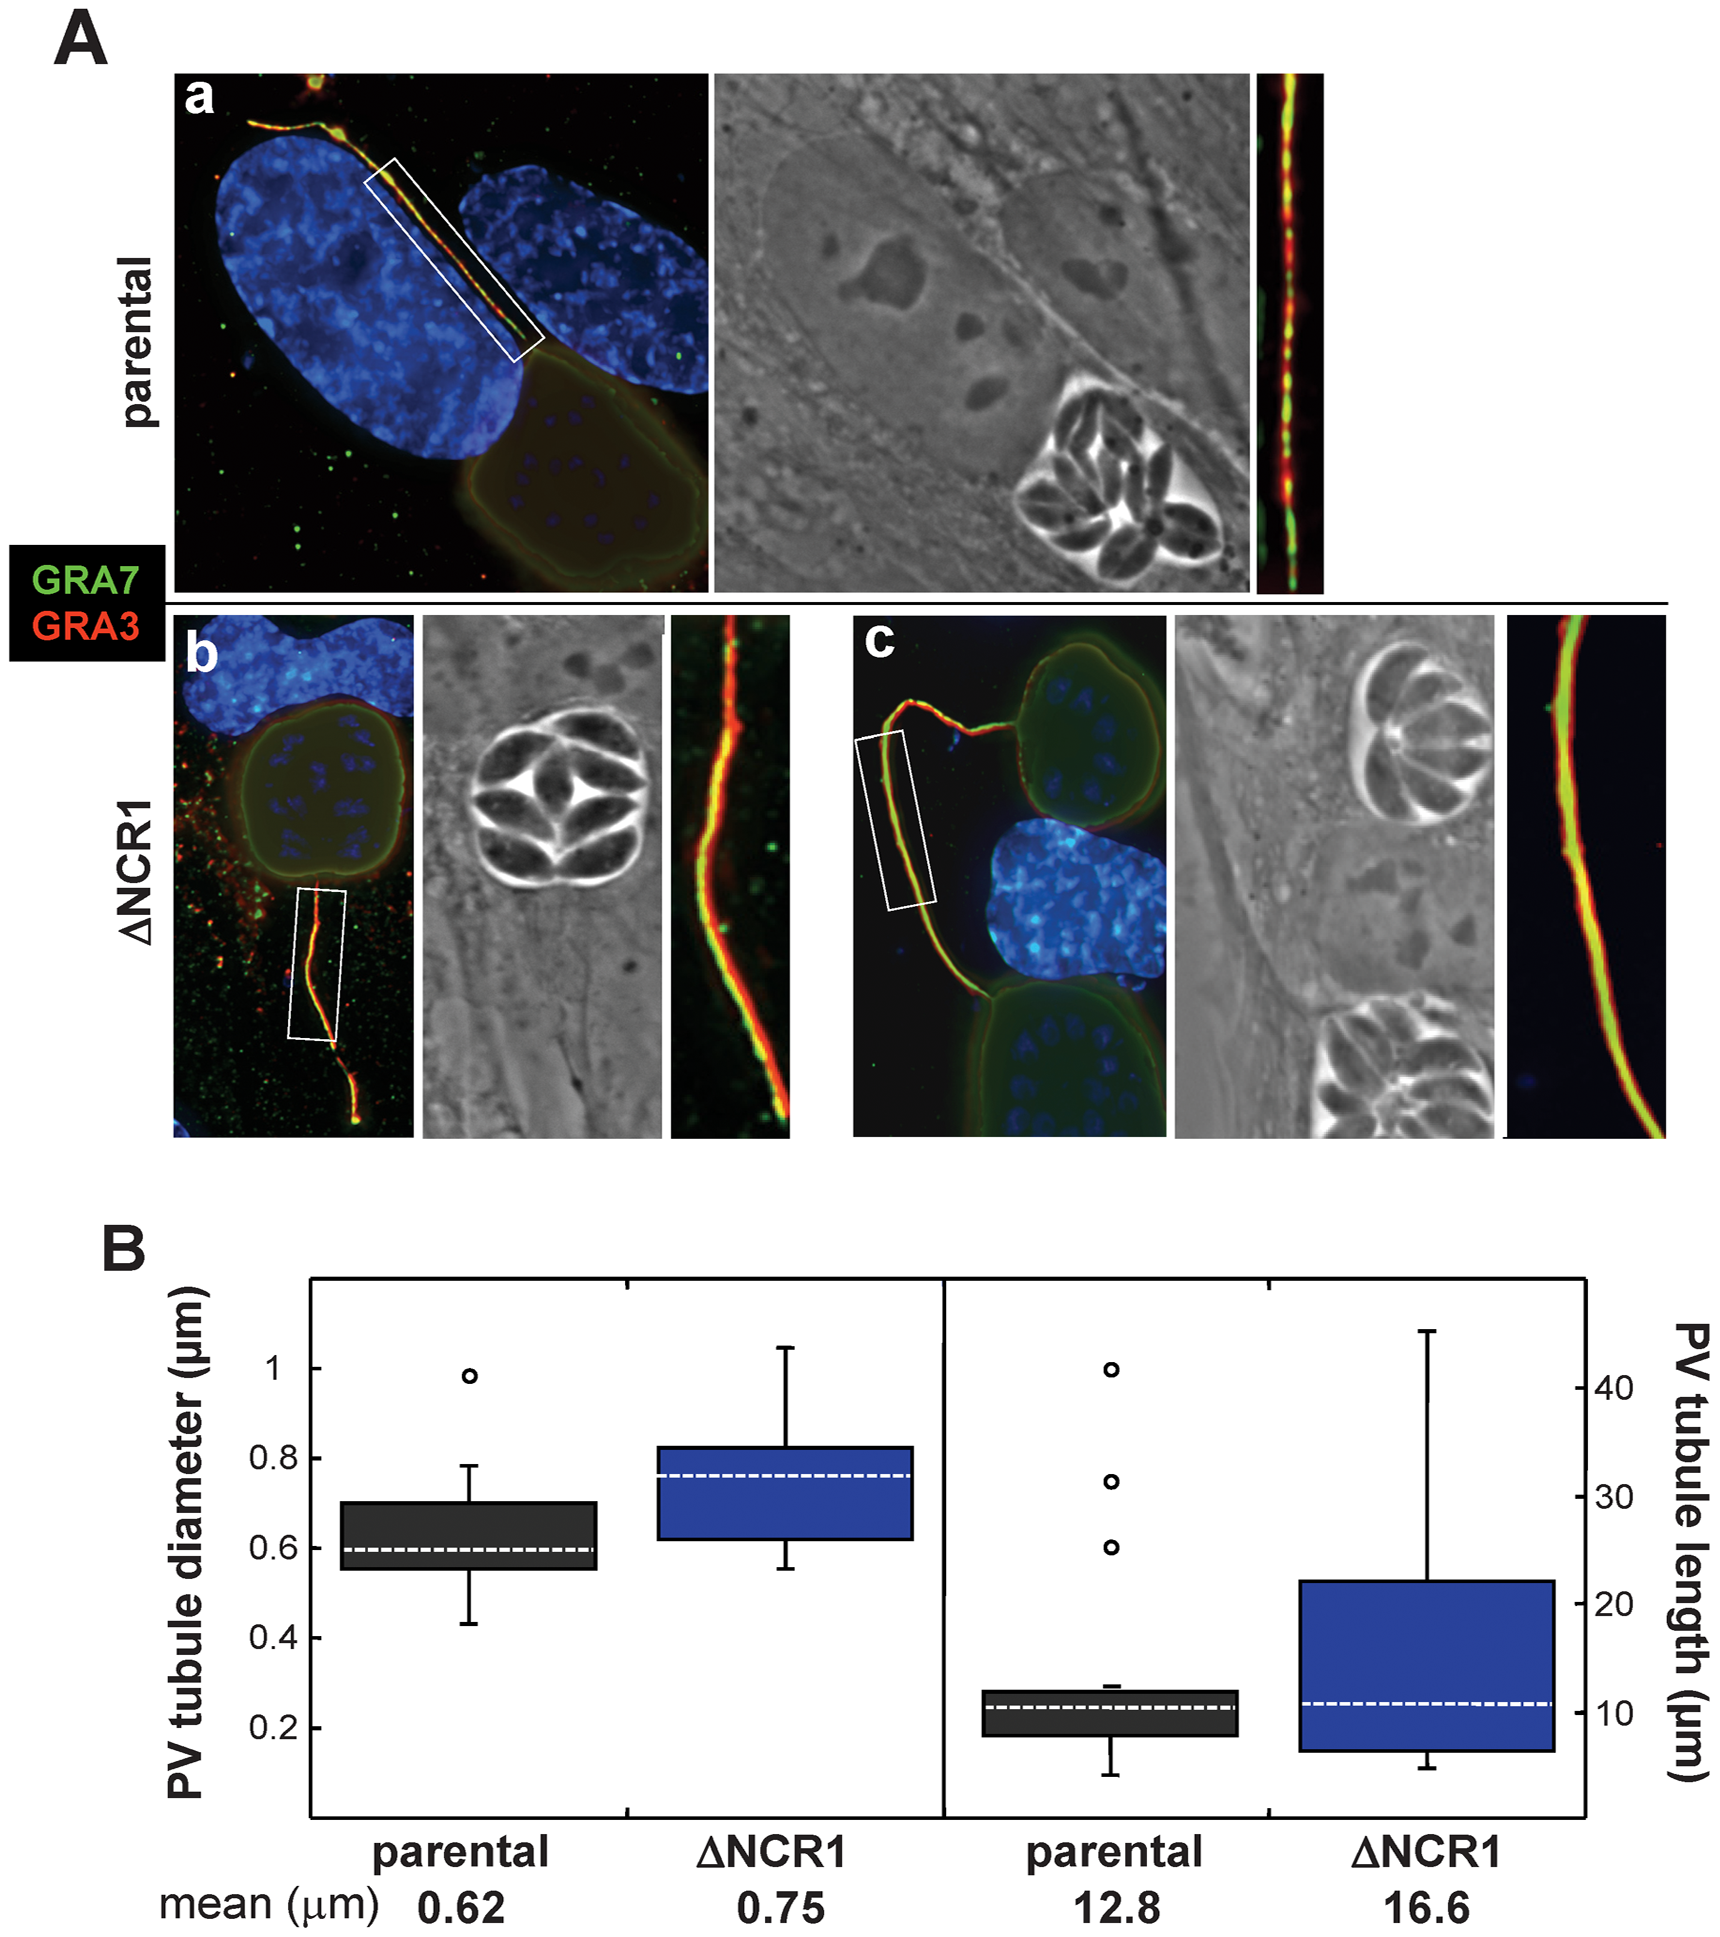 Characteristics of PV membranous extensions formed by the ΔNCR1 and parental strains.